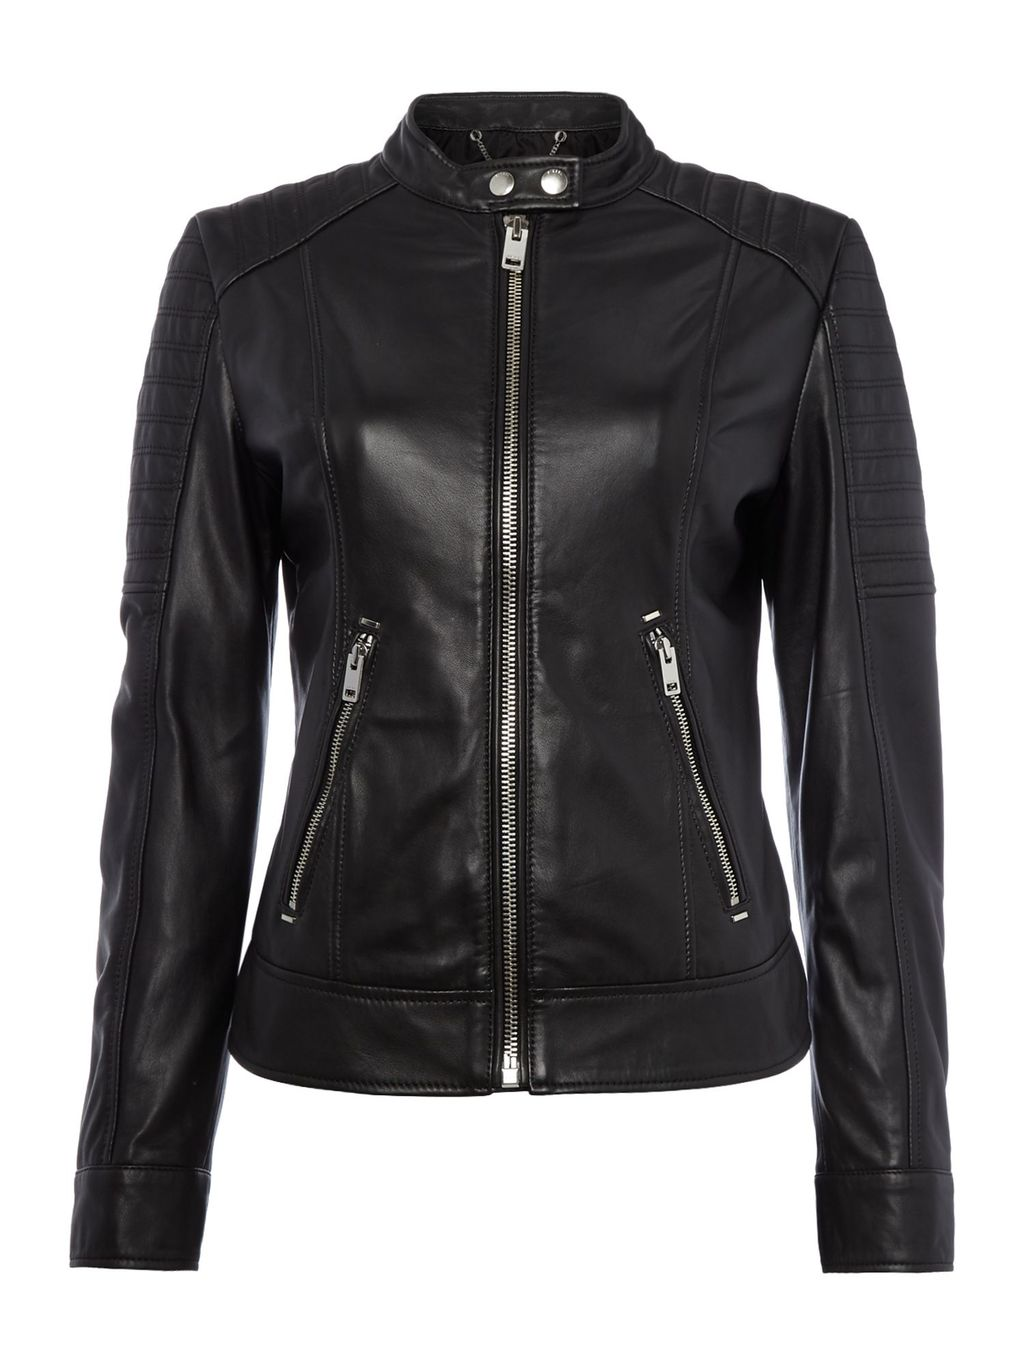 L Nayt Leather Jacket, Black - pattern: plain; style: biker; collar: standard biker; fit: slim fit; predominant colour: black; occasions: casual, creative work; length: standard; fibres: leather - 100%; sleeve length: long sleeve; sleeve style: standard; texture group: leather; collar break: high/illusion of break when open; pattern type: fabric; season: s/s 2016; wardrobe: basic